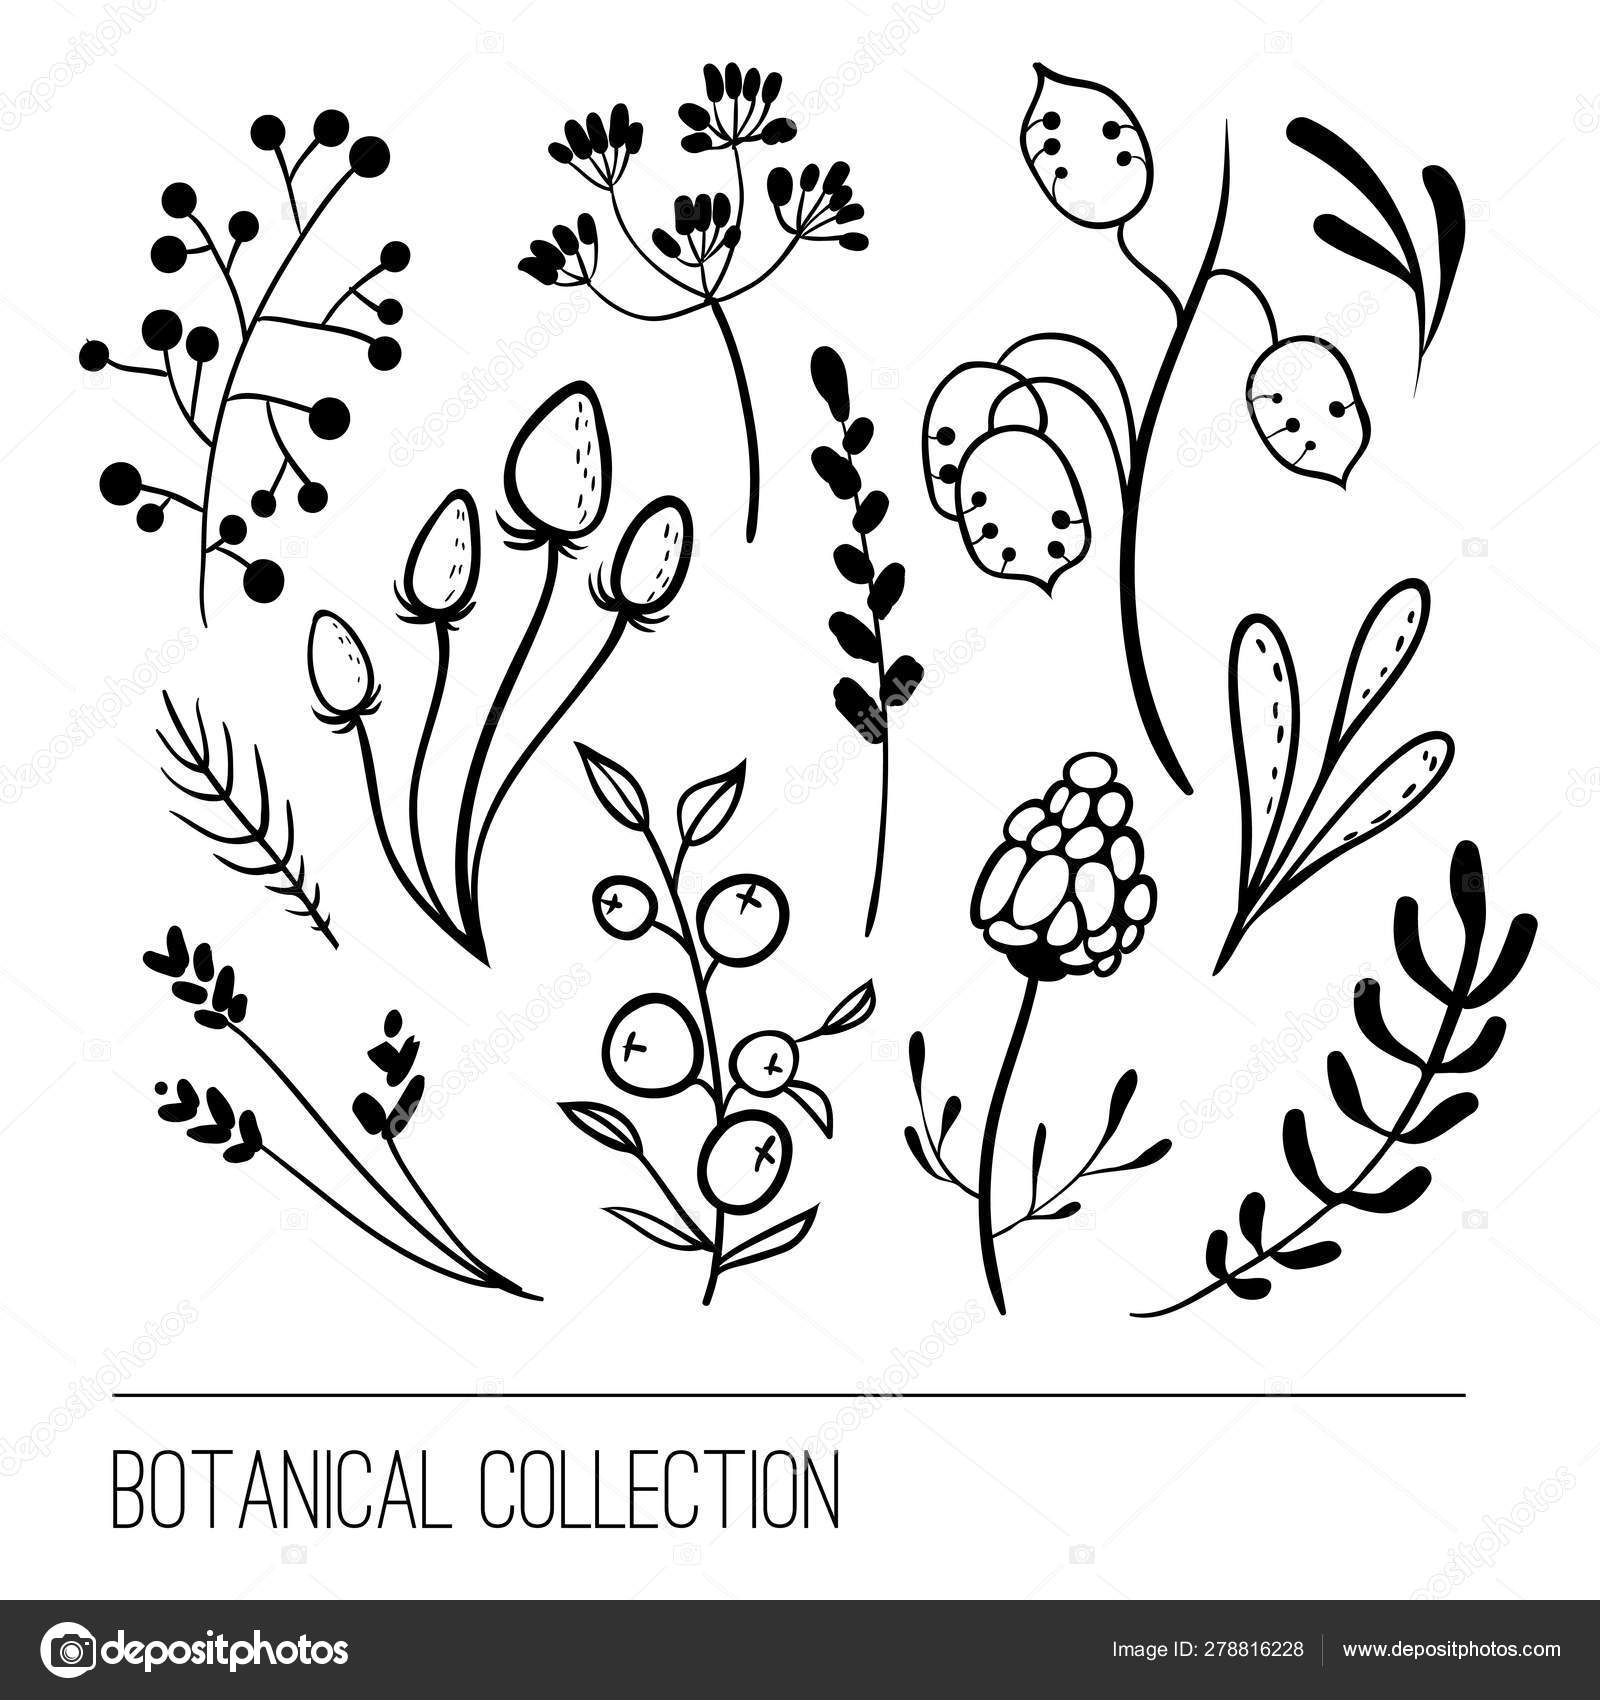 Botanical collection. Flower simple graphic design. \u2014 Stock